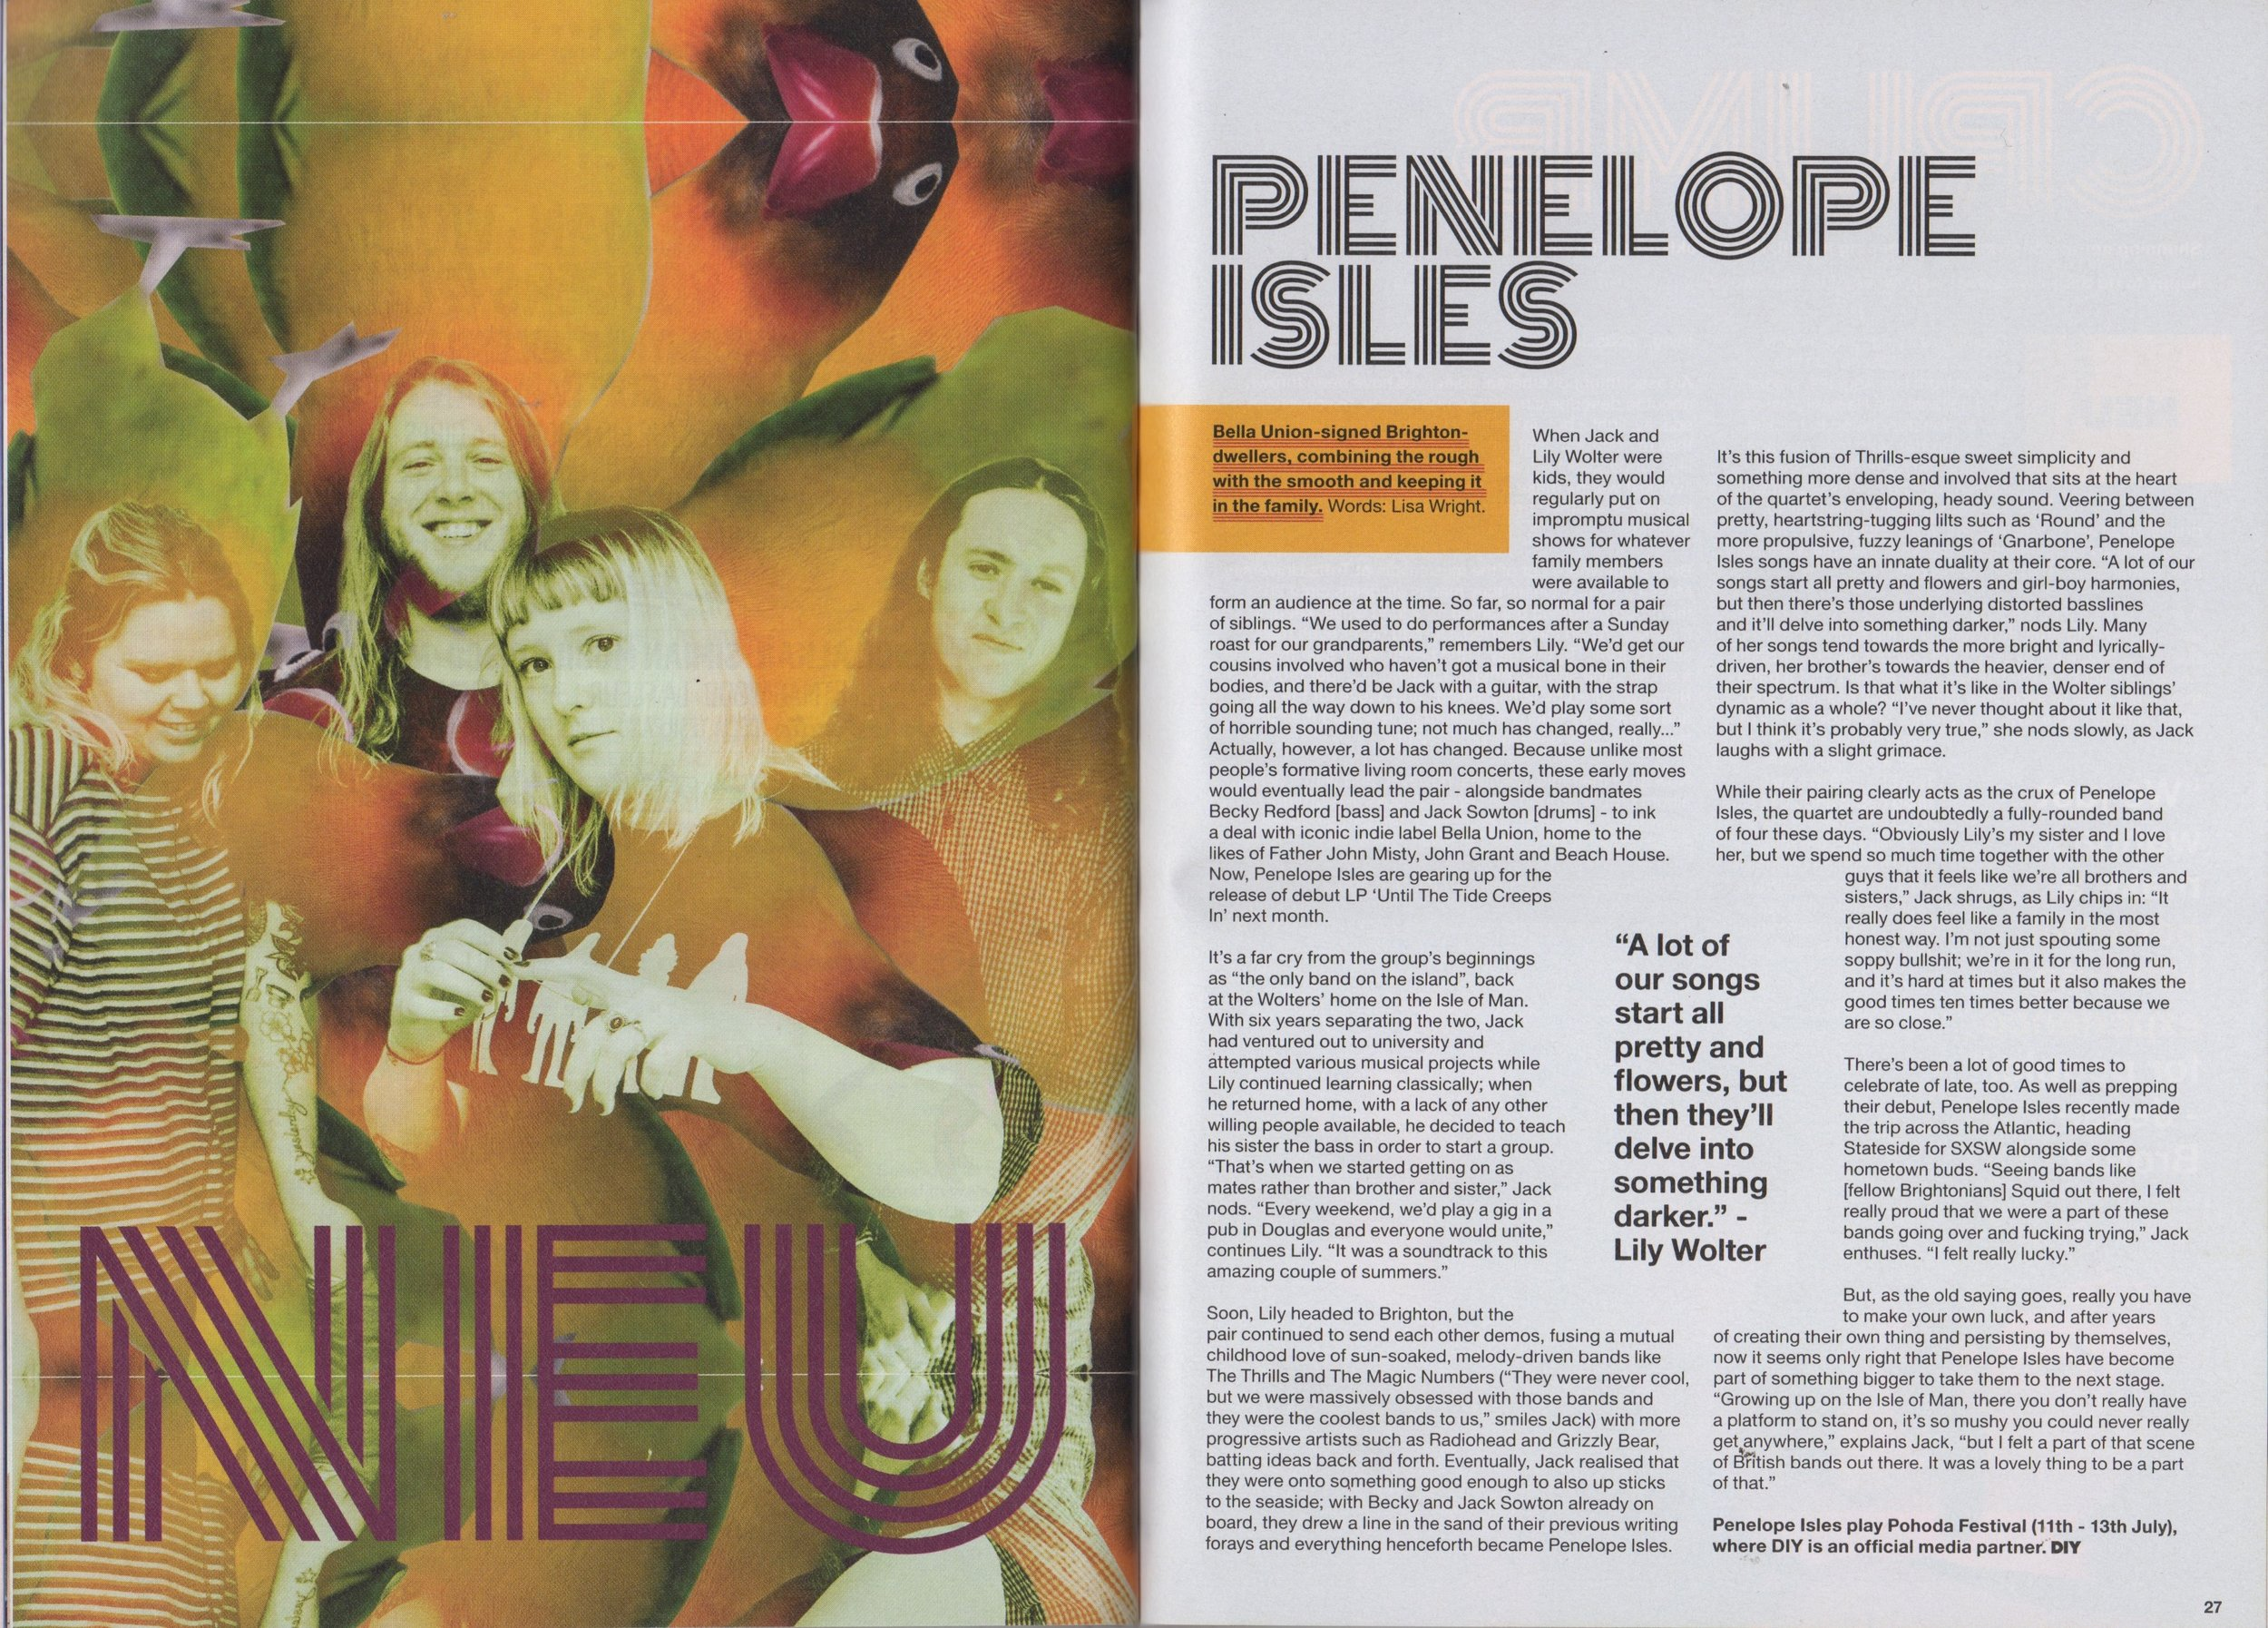 Penelope Isles - DIY (feature) - June 2019.jpeg